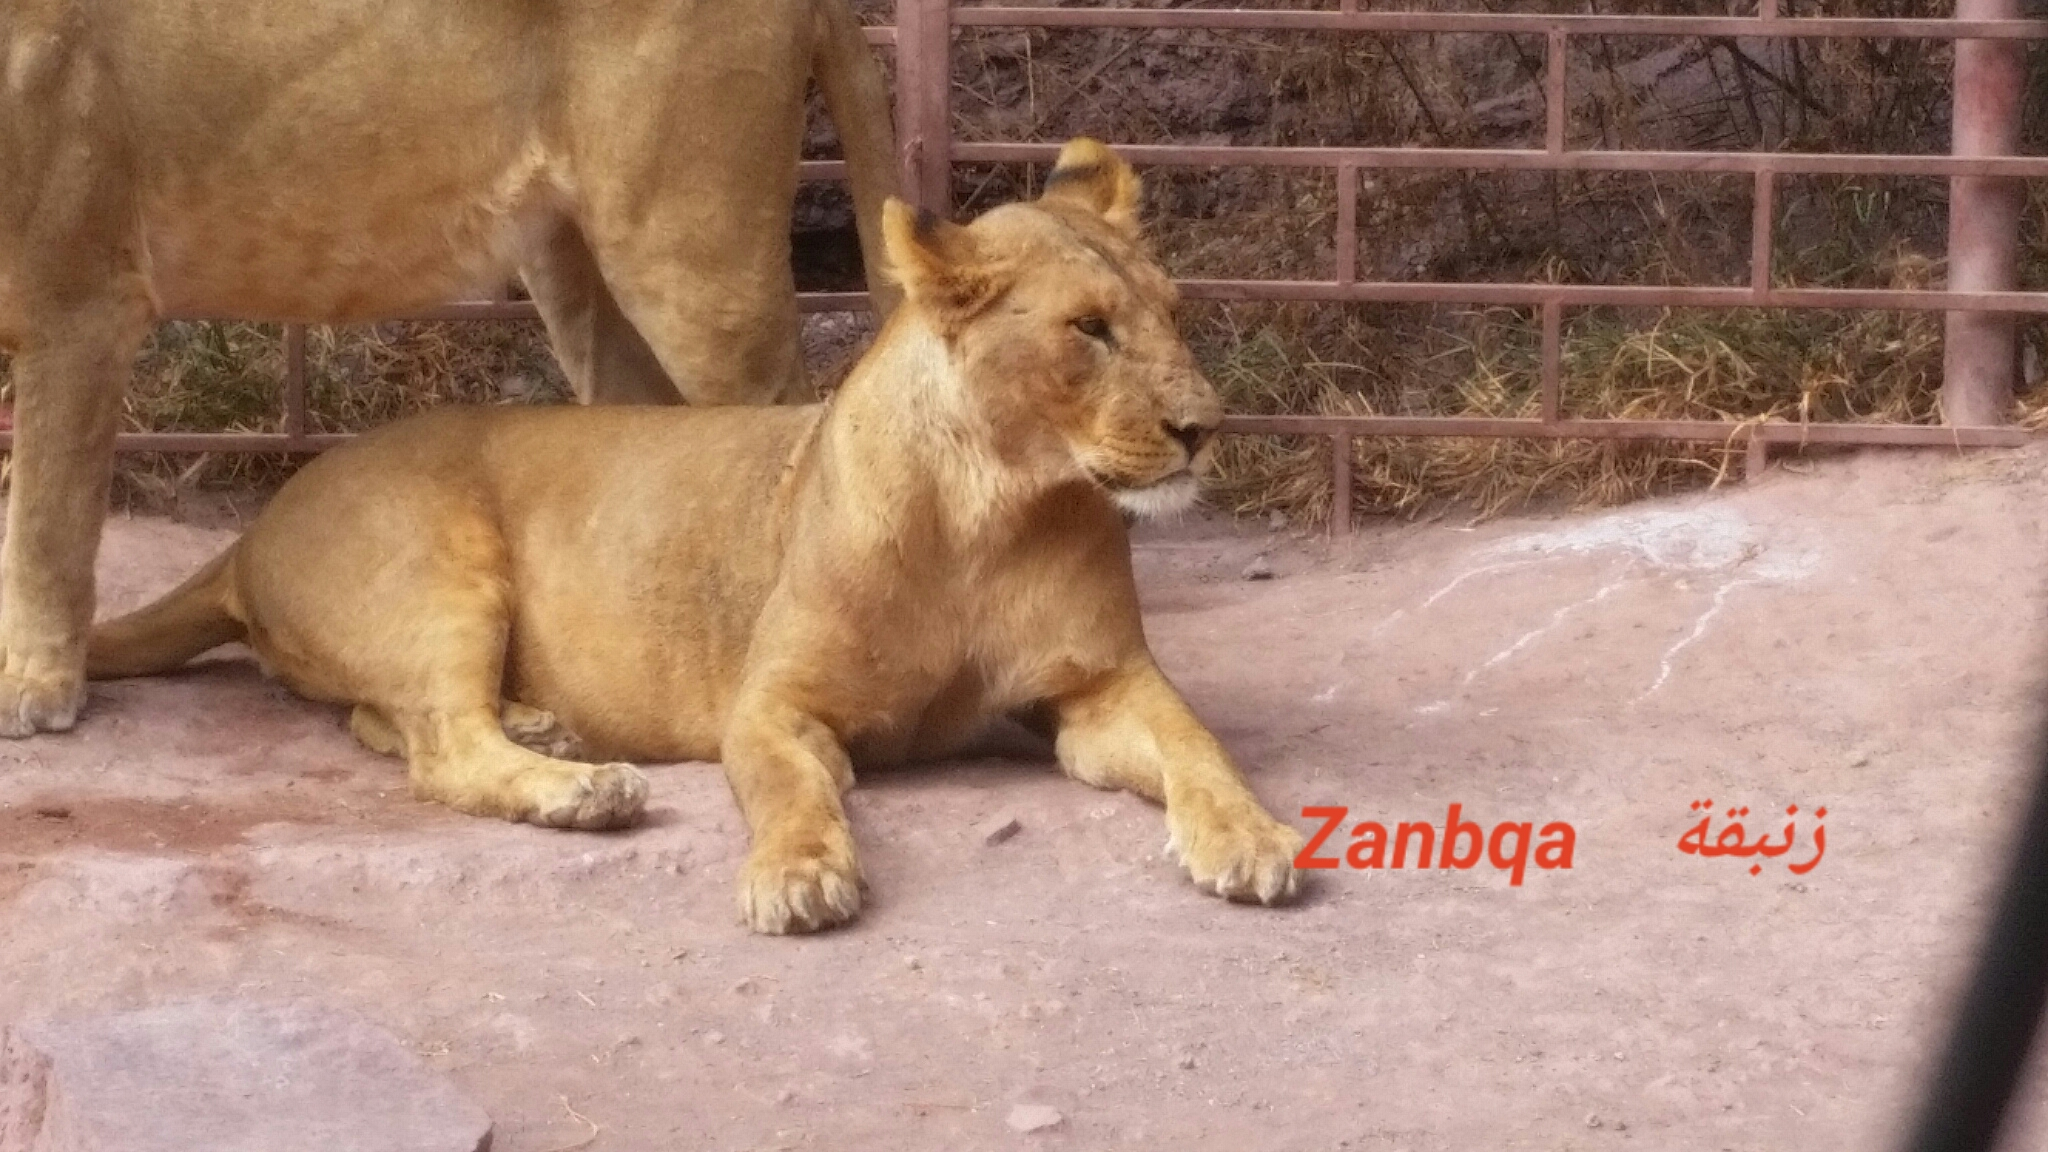 ibb zoo yemen OWAP AR rescue ZANBQA Lion name 7 NOVember 2018 fed and digesting Hisham pic.jpg